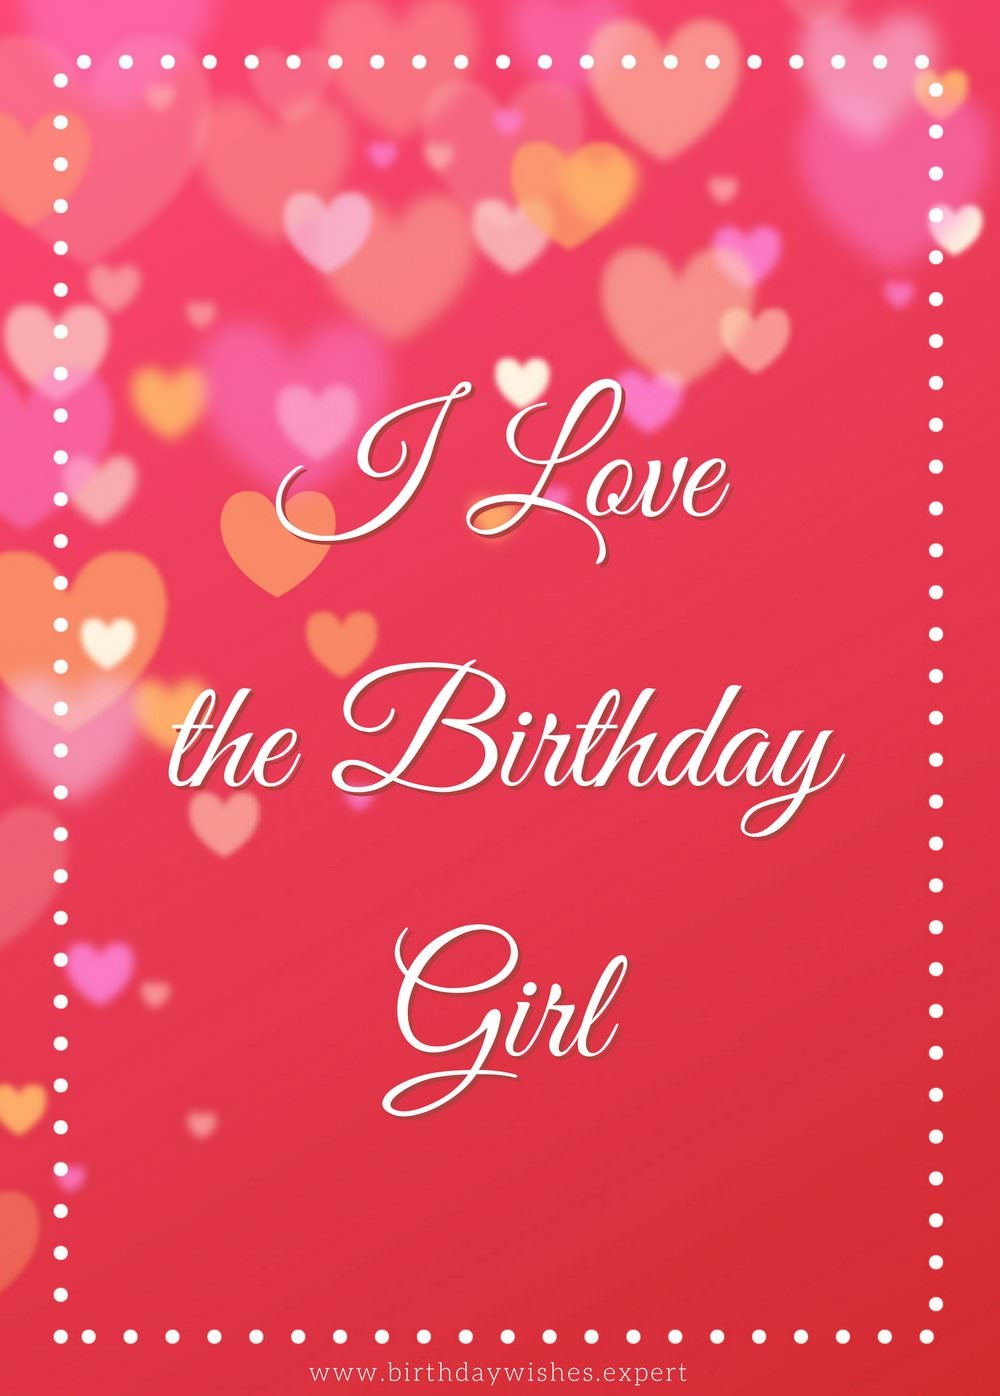 Love Only Romantic Birthday Wishes For Your Girlfriend